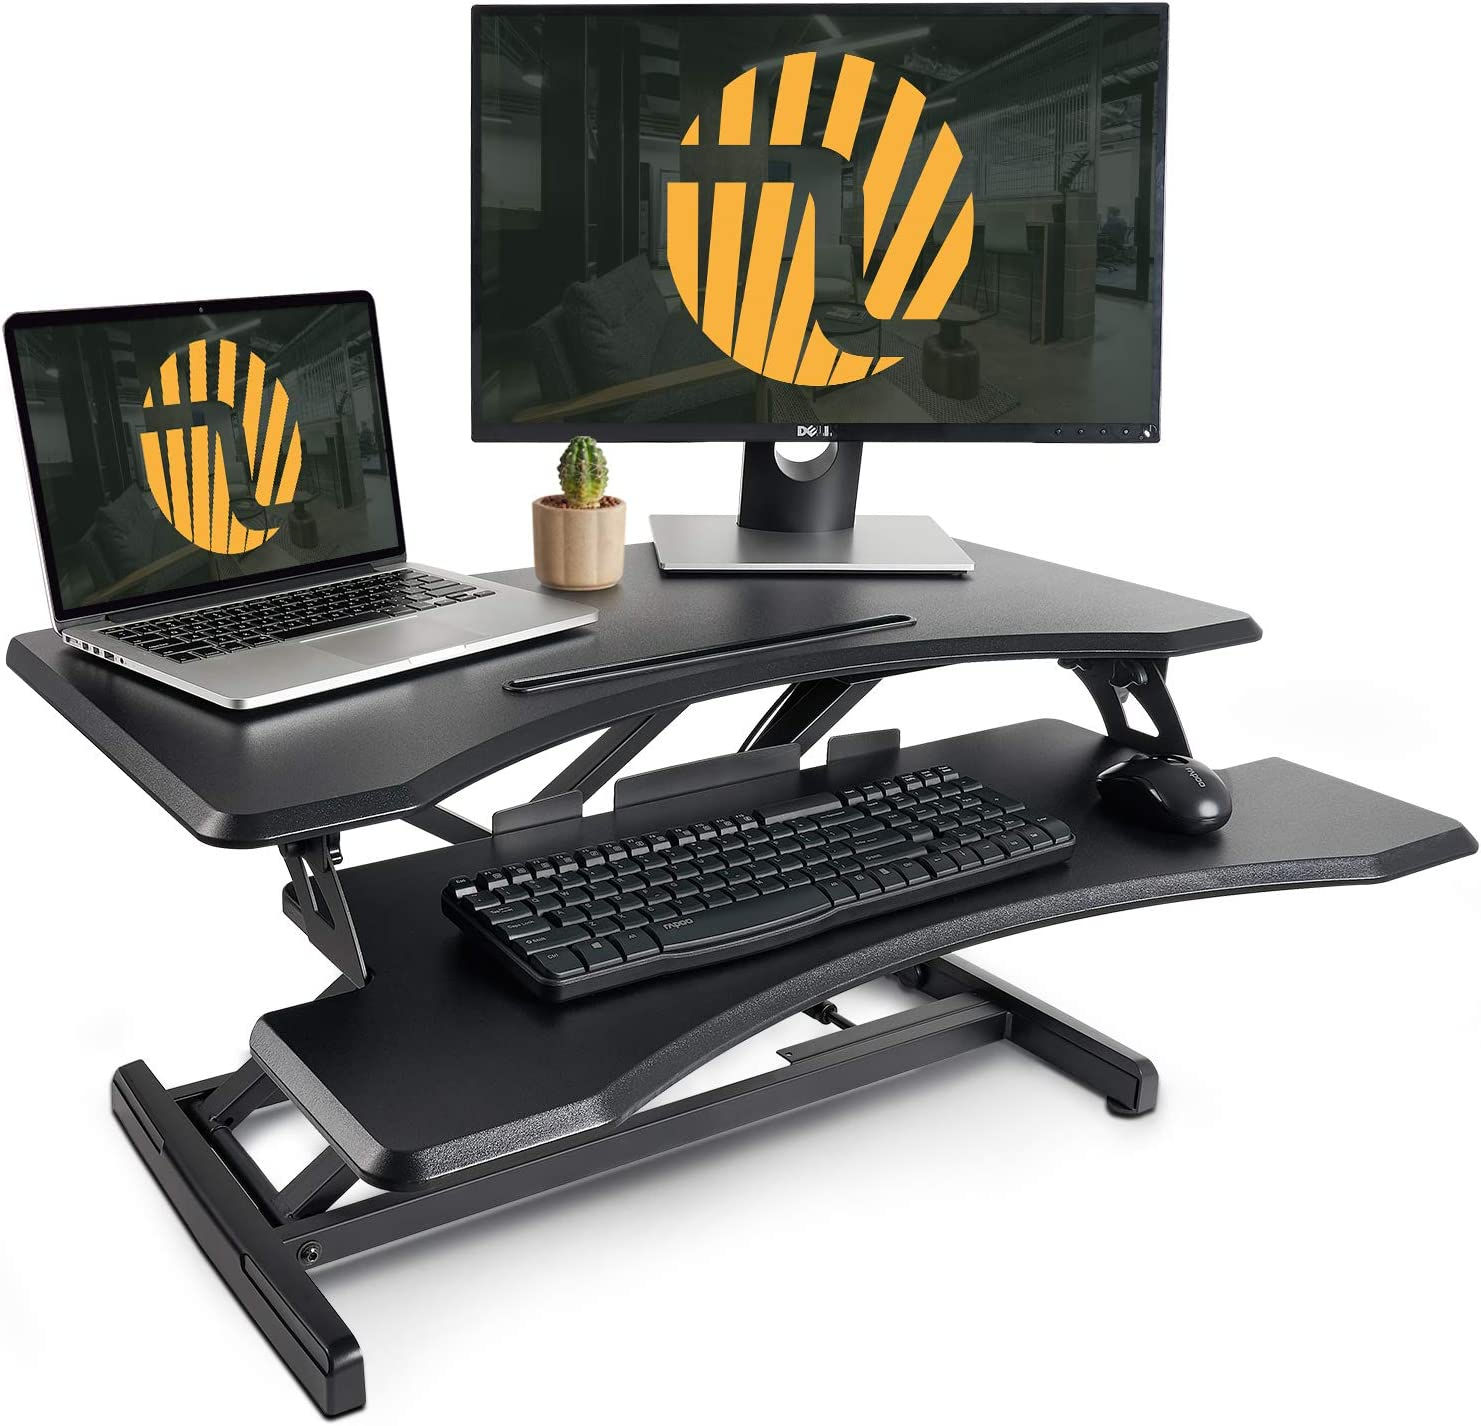 FEZIBO Stand Up Desk Converter,